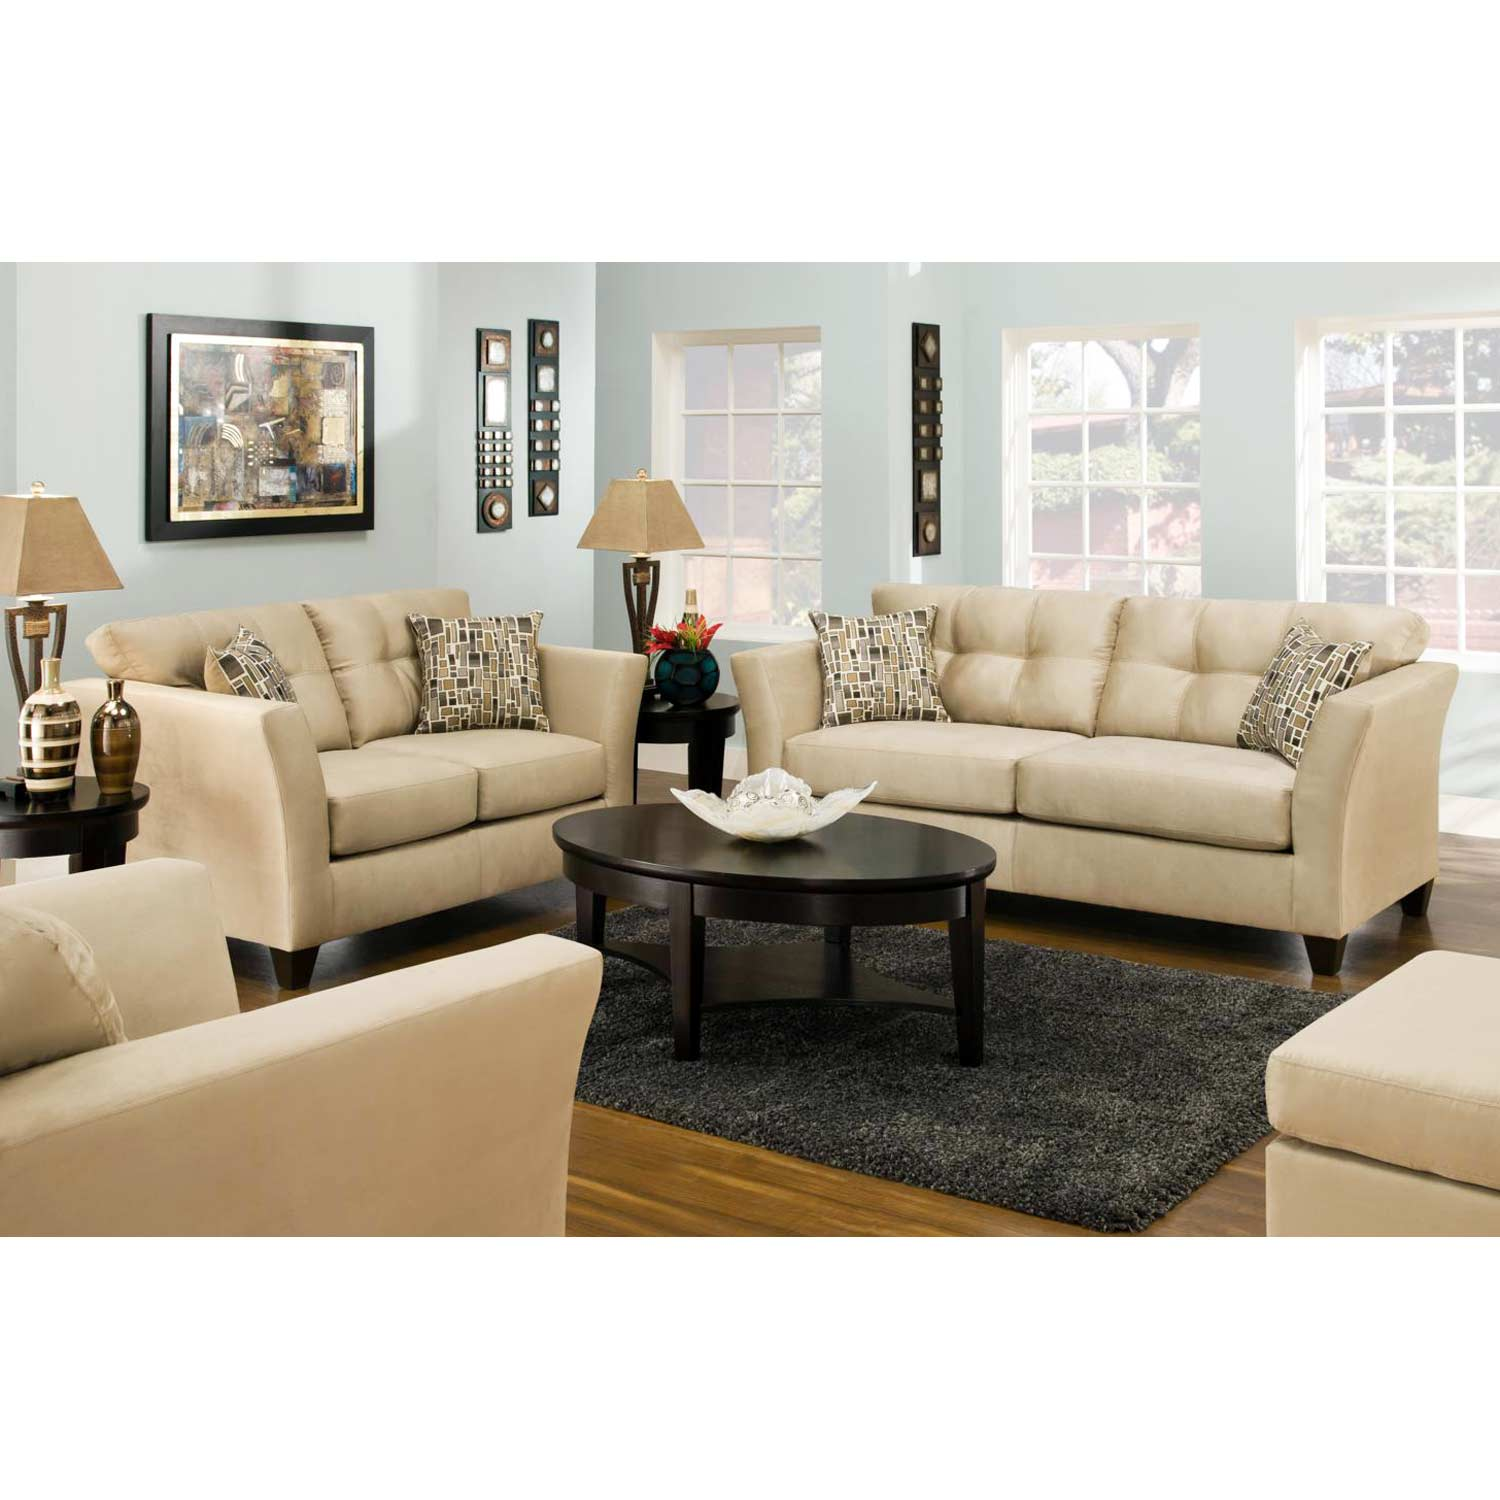 del mar custom sectional sofa rooms to go outlet bed tufted beijing toast fabric dcg stores